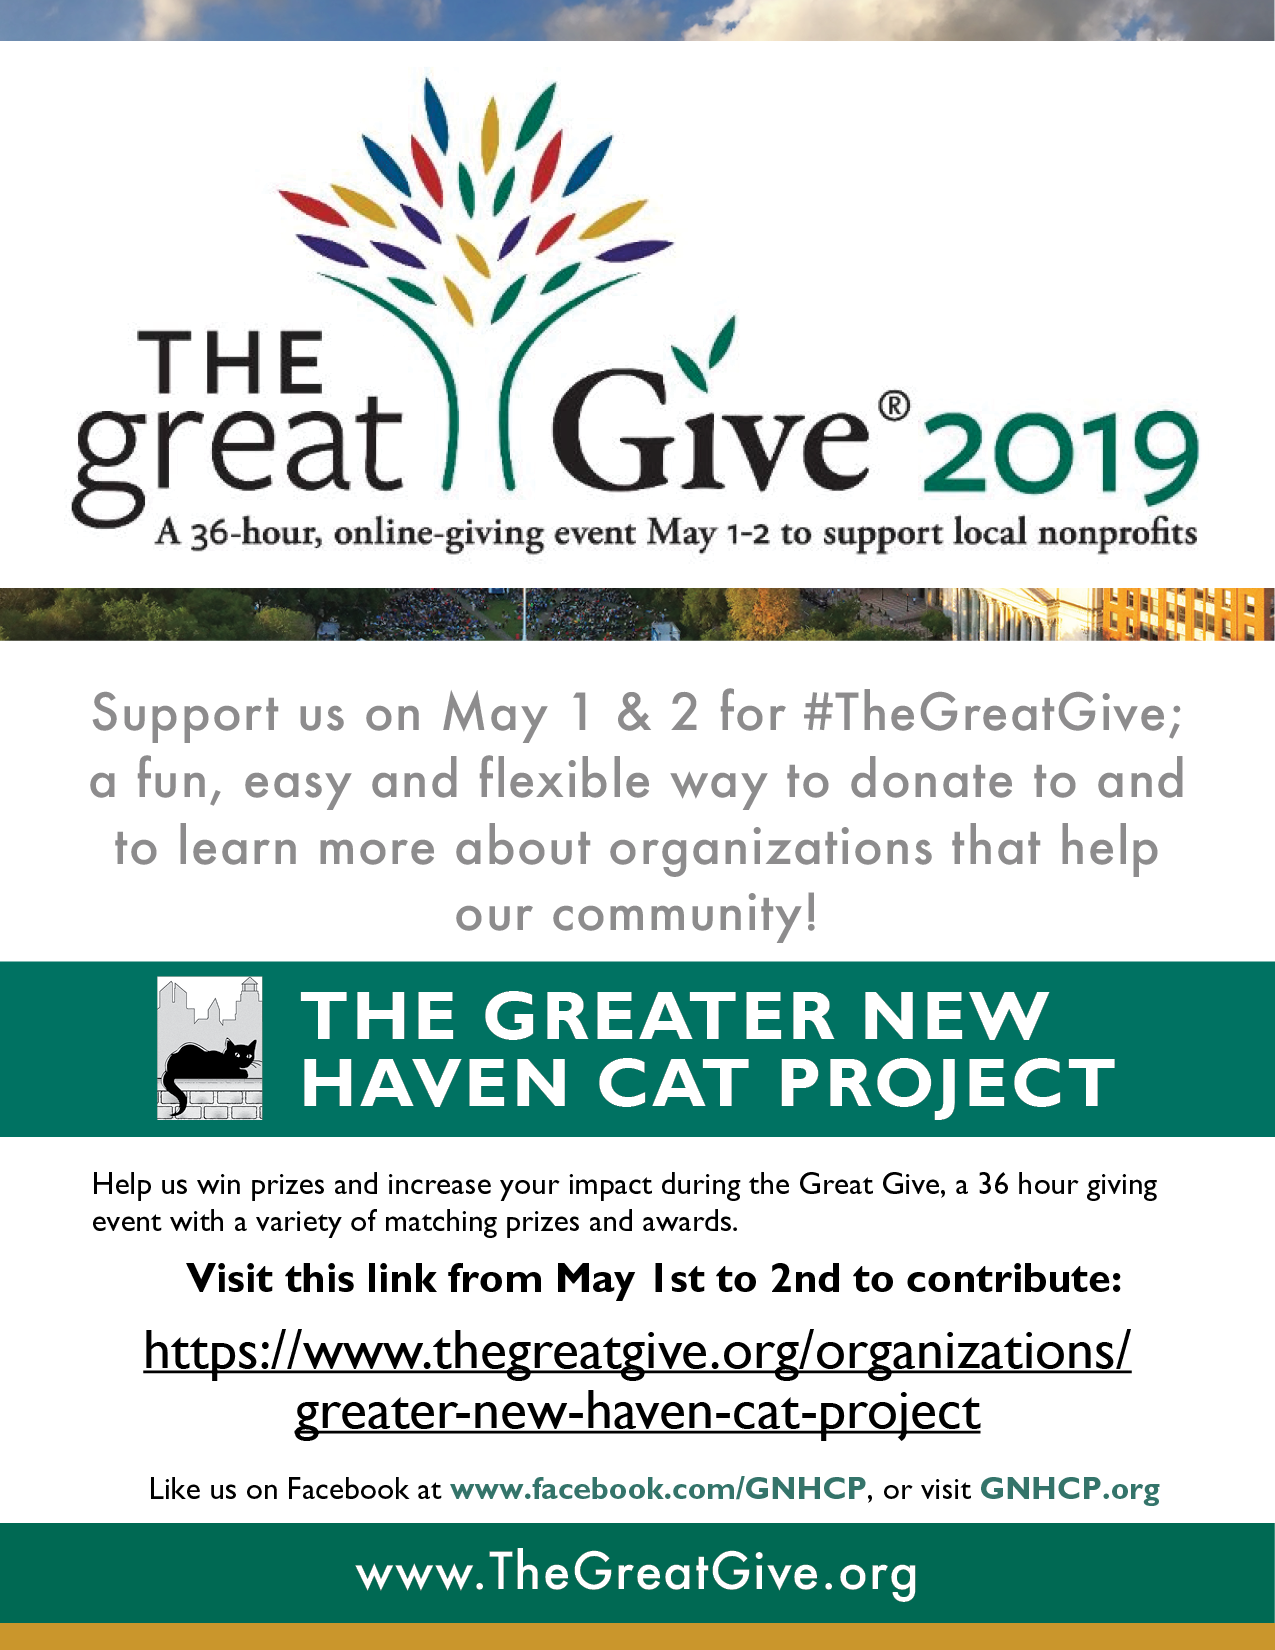 greatgive2019.png